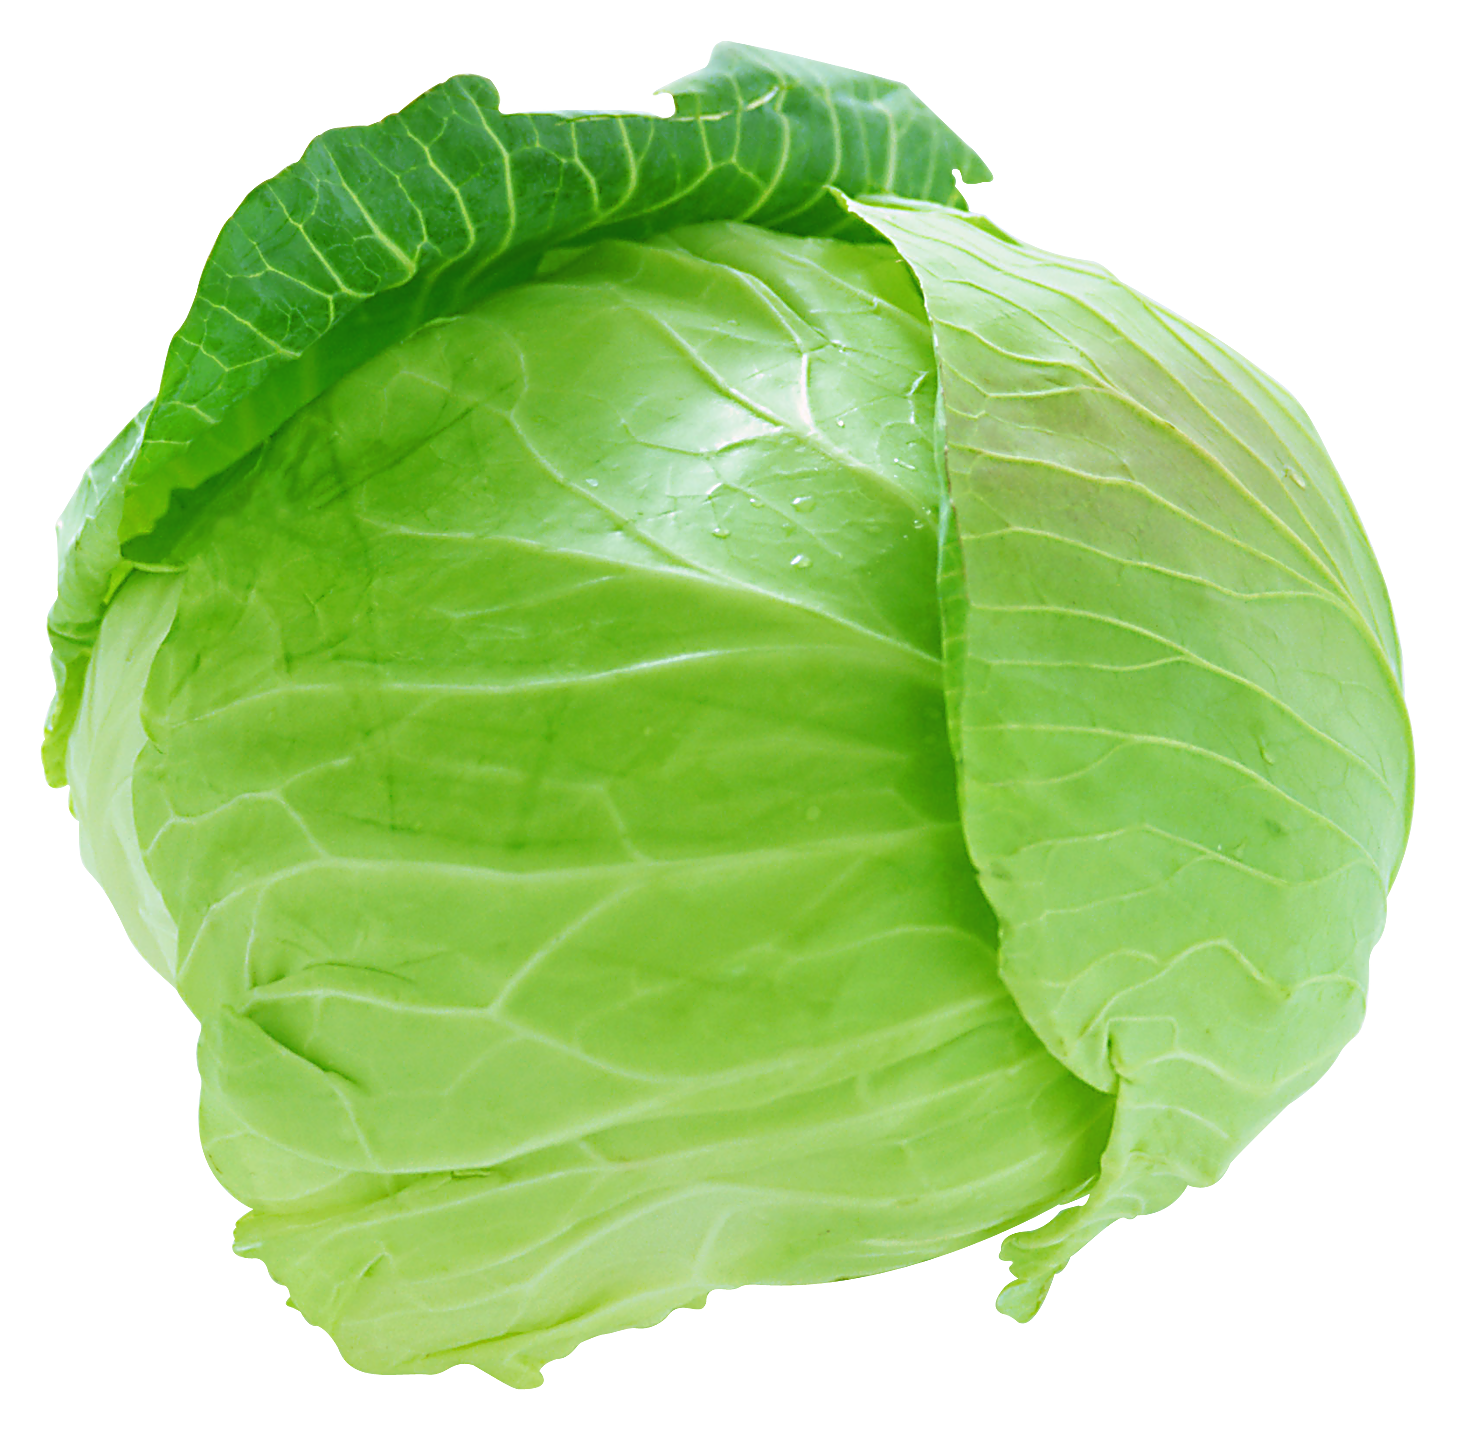 Lettuce clipart tomato salad Org Related DownloadClipart clipart Cabbage